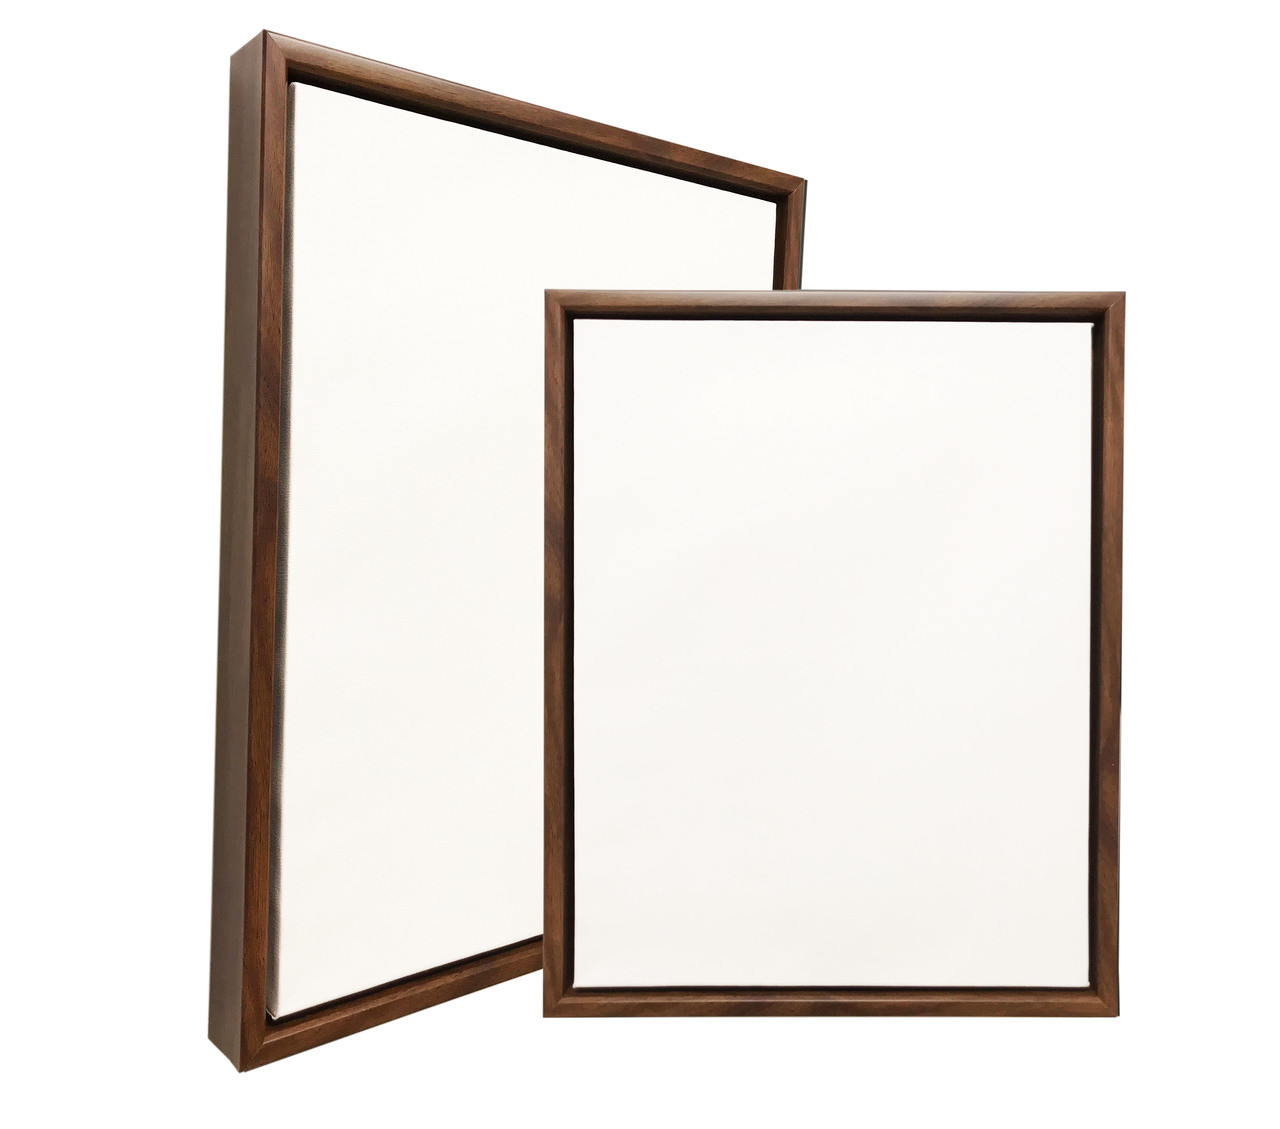 c637c124500f Wholesale frames from a frame factory - Wholesale Arts Frames